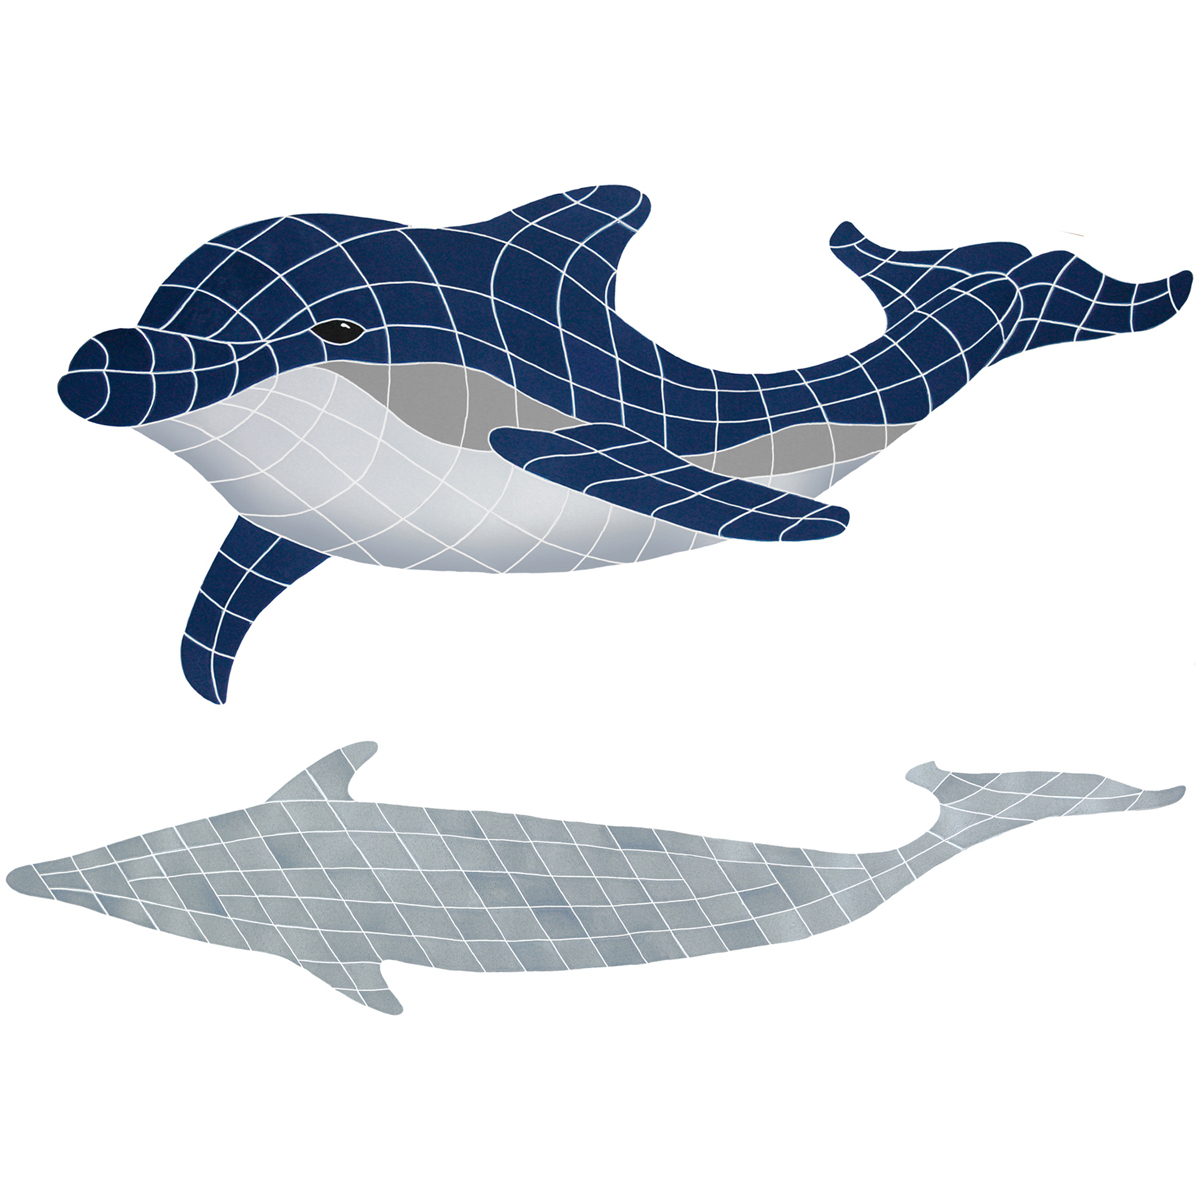 "Bottlenose Dolphin Down with Shadow Ceramic Mosaic Swimming Pool Mural 36"" x 51"", 1 piece"